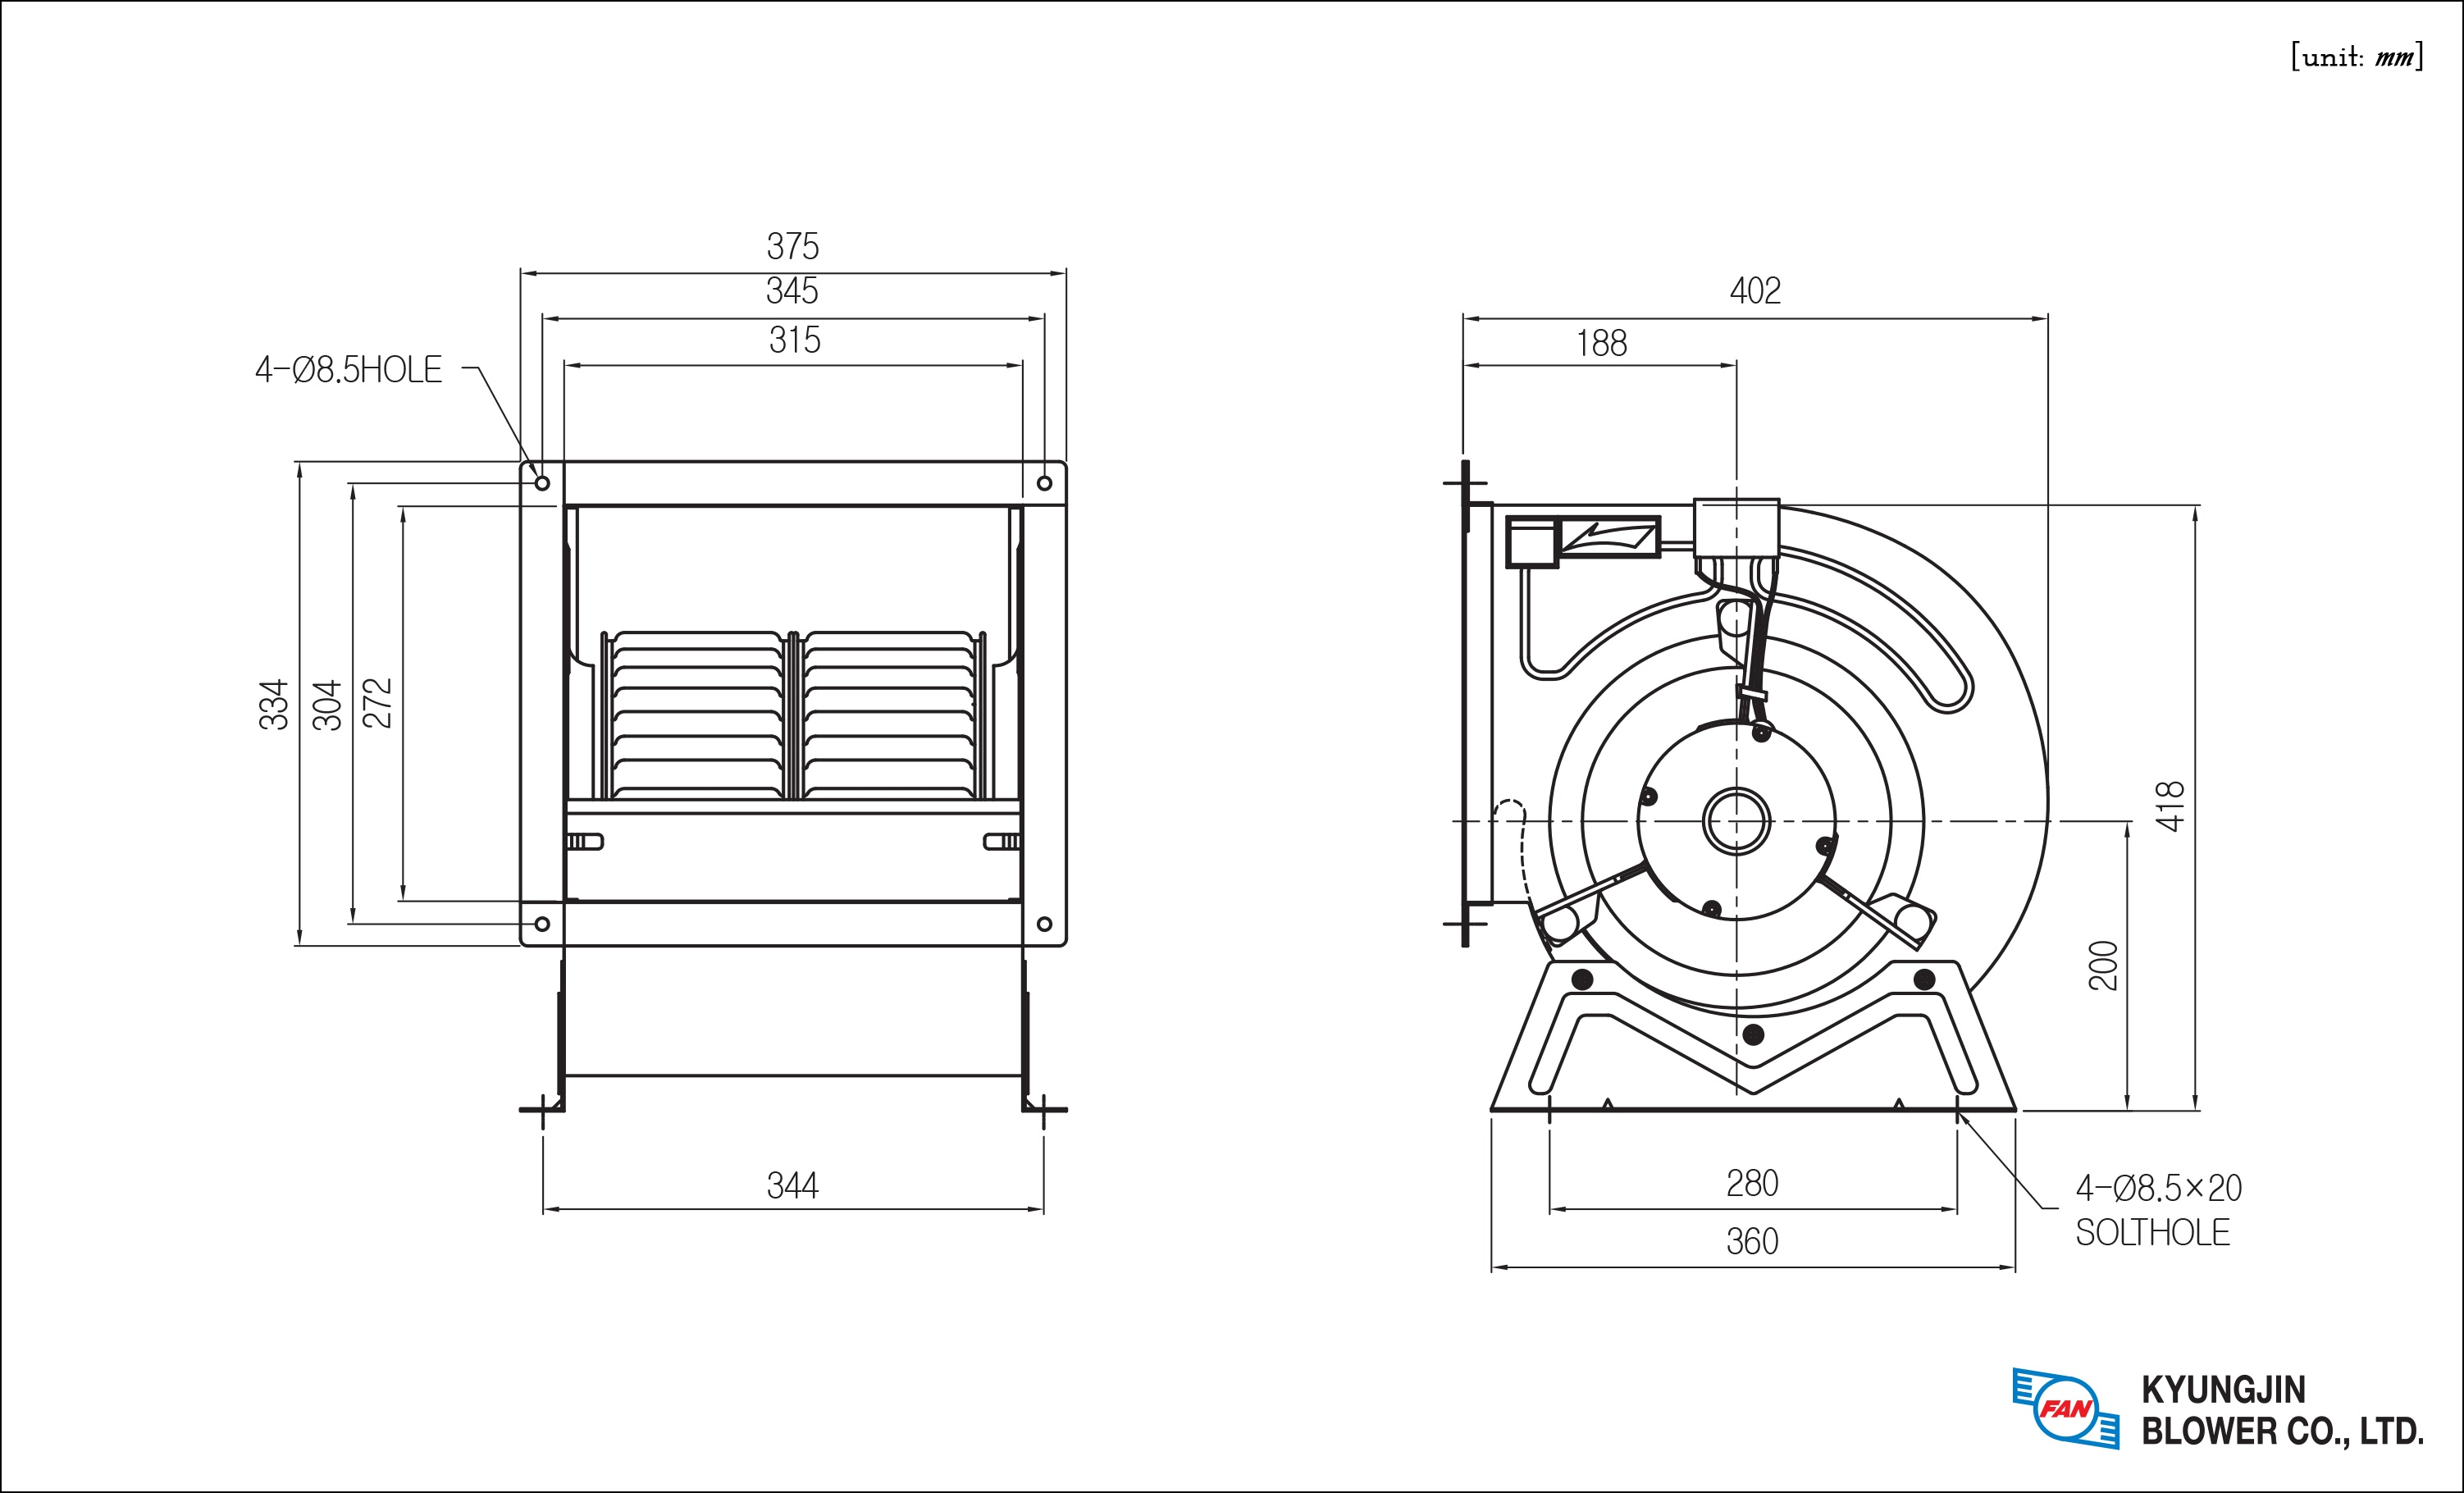 DOUBLE INLET FANS (CONSTANT TEMPERATURE AND HUMIDITY